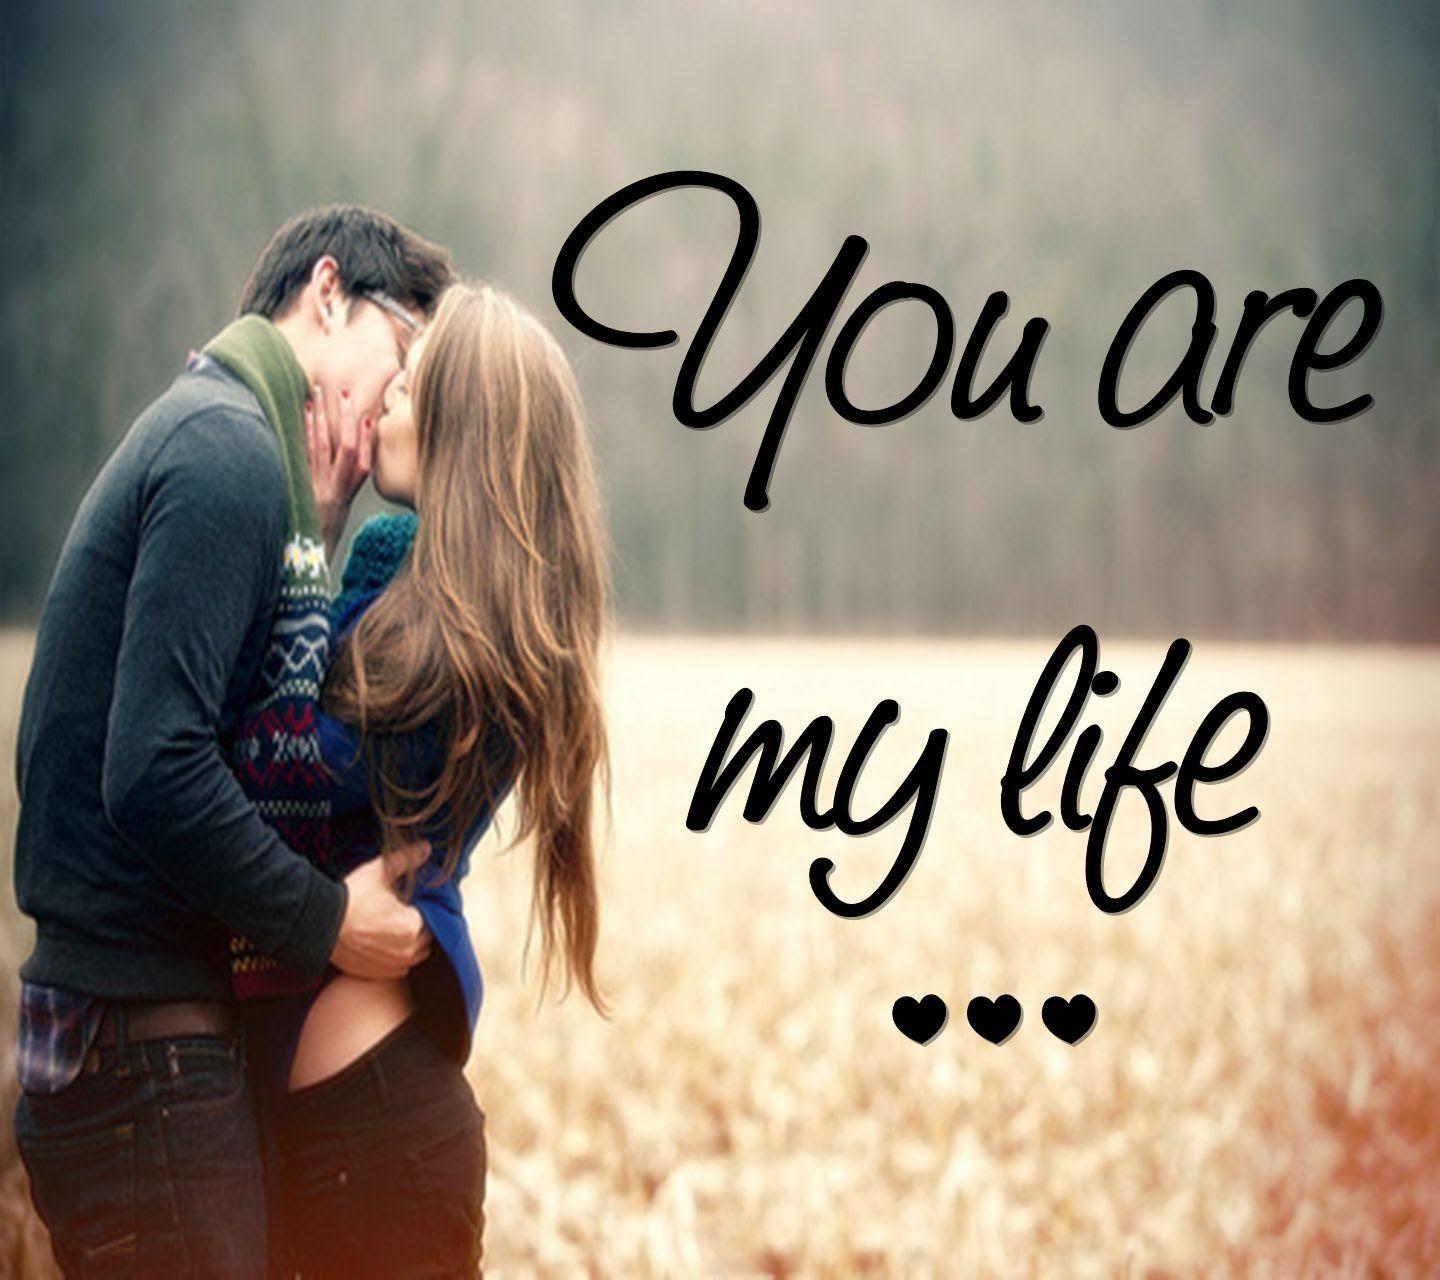 Romantic Love Quotes For Him From The Heart Love Couple Images Romantic Kiss Images Love Quotes For Her